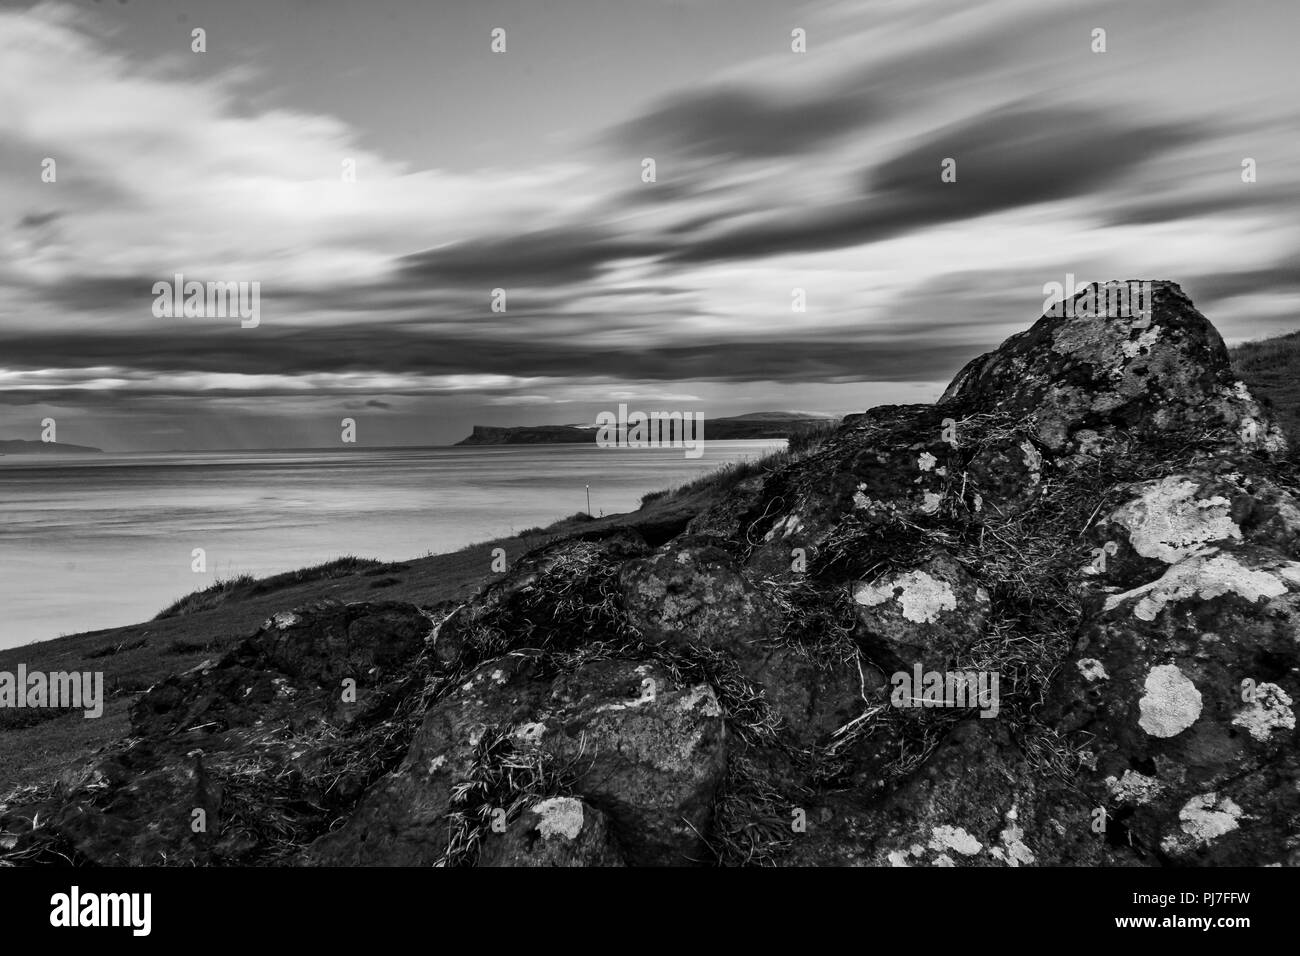 longtime exposure in black and white - Stock Image